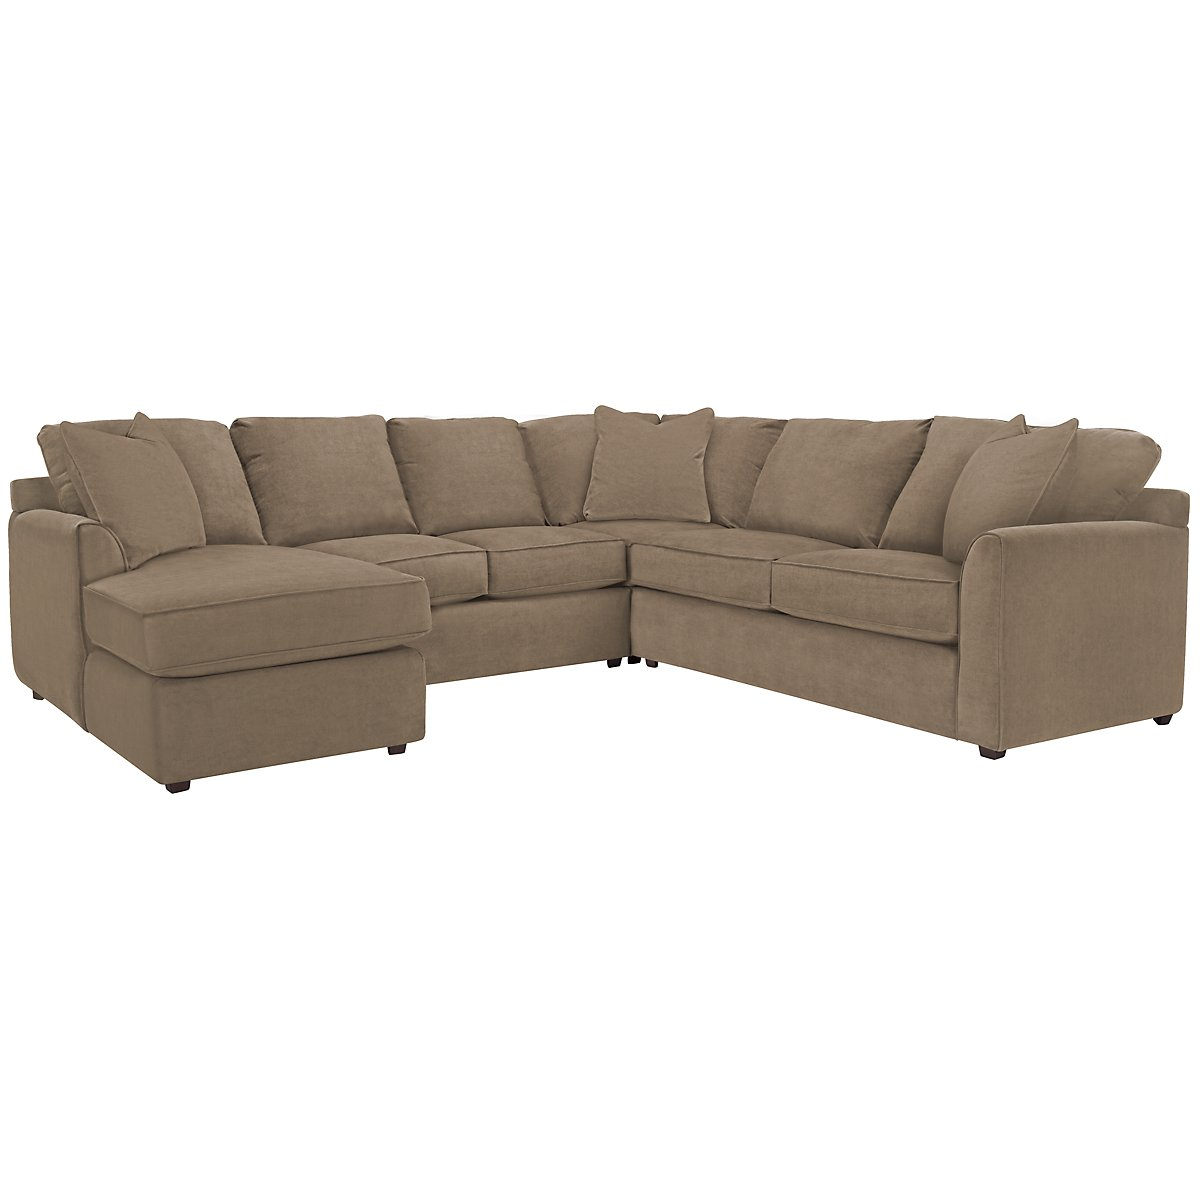 Express3 Light Brown Microfiber Small Left Chaise Sectional